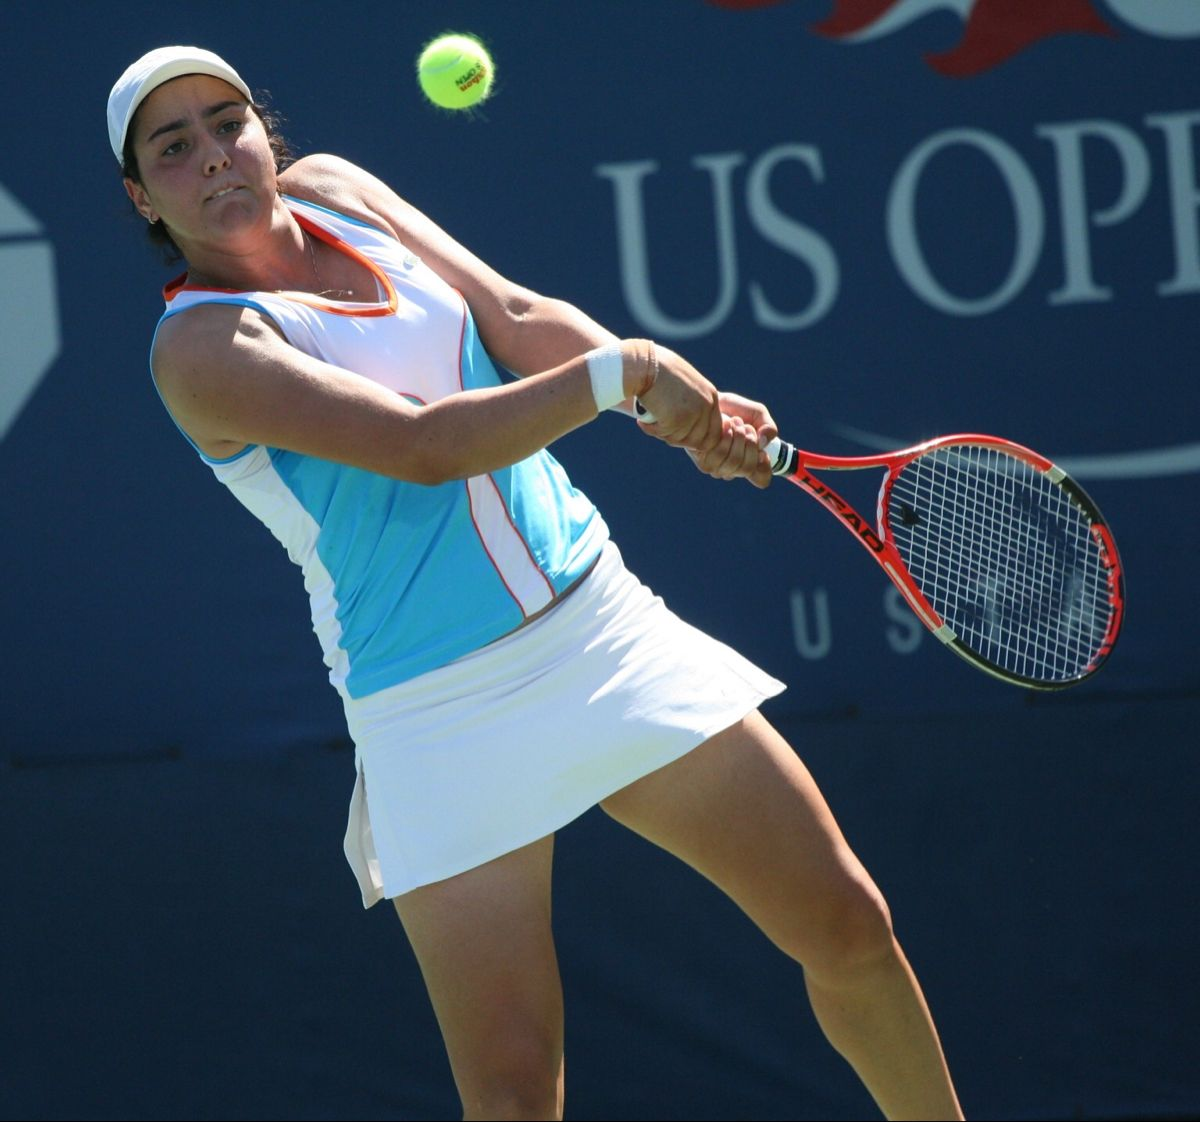 Top Seed Open Day 3 Recap The Tennis Advocate In 2020 Tennis Match Of The Day Tennis Events